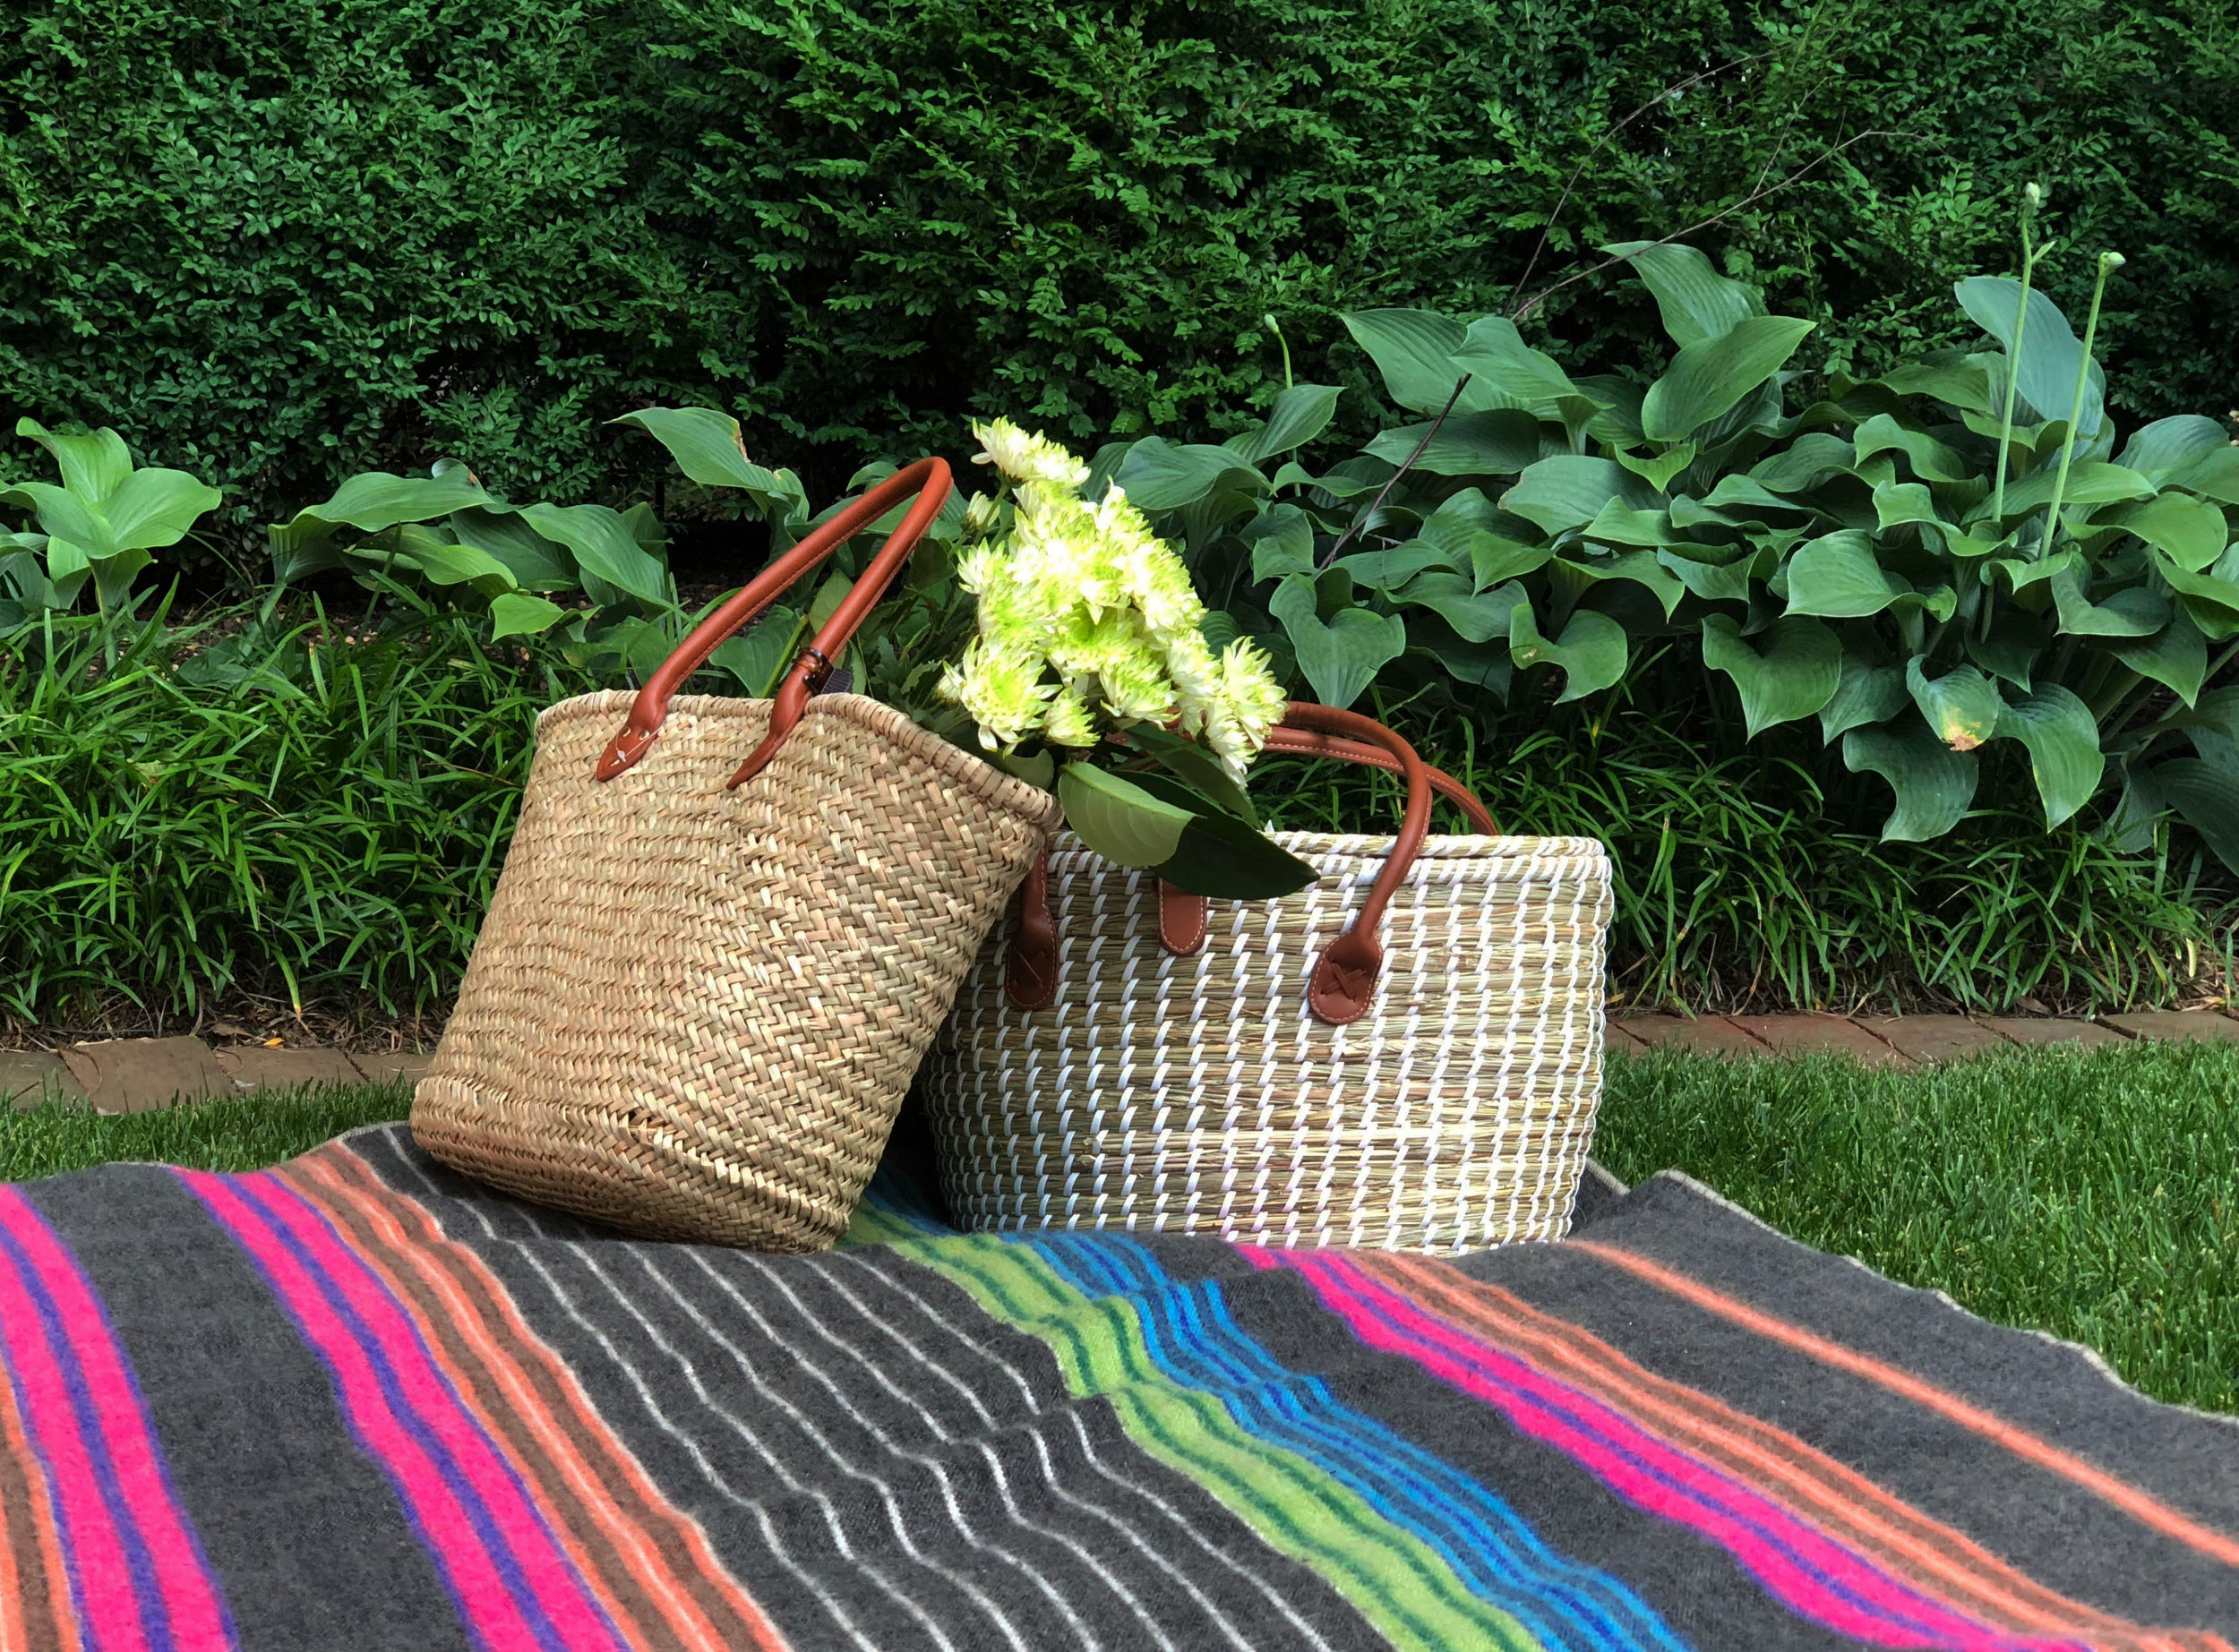 lucy-grymes-blog-picture-perfect-picnic-blanket.jpg